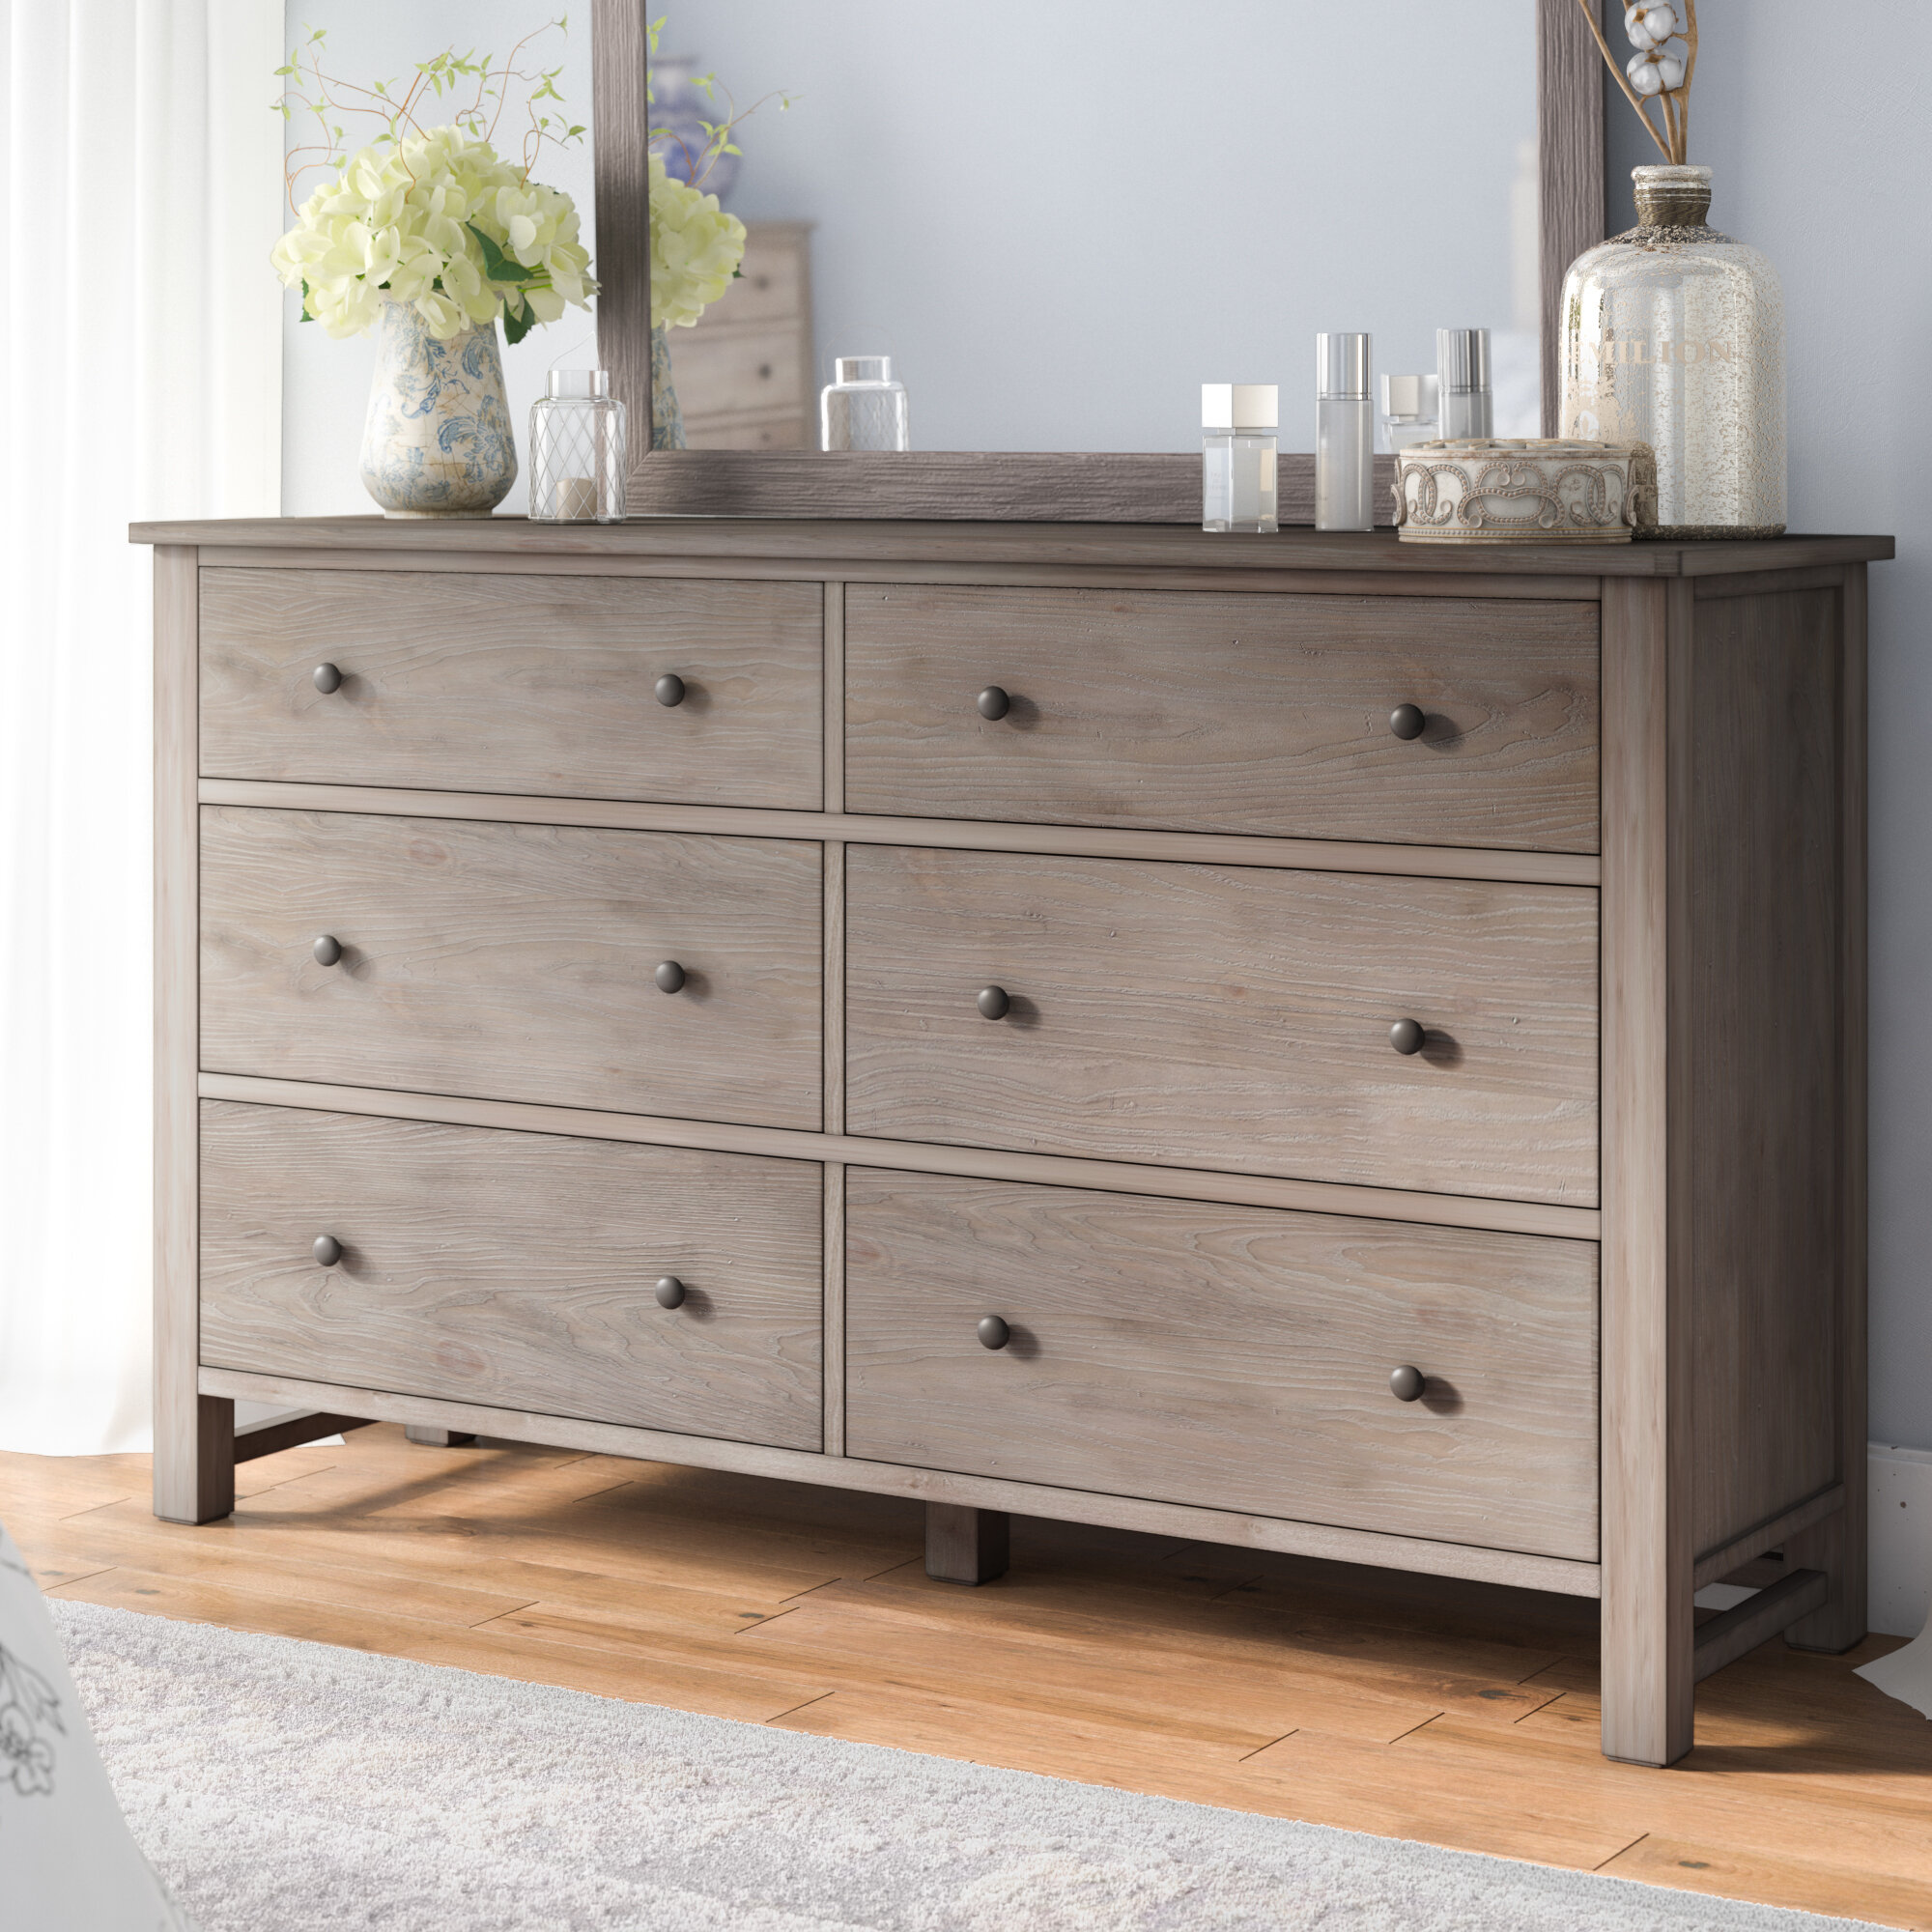 gray drawers prod double dresser shore drawer versa hei p of chests wid qlt south maple